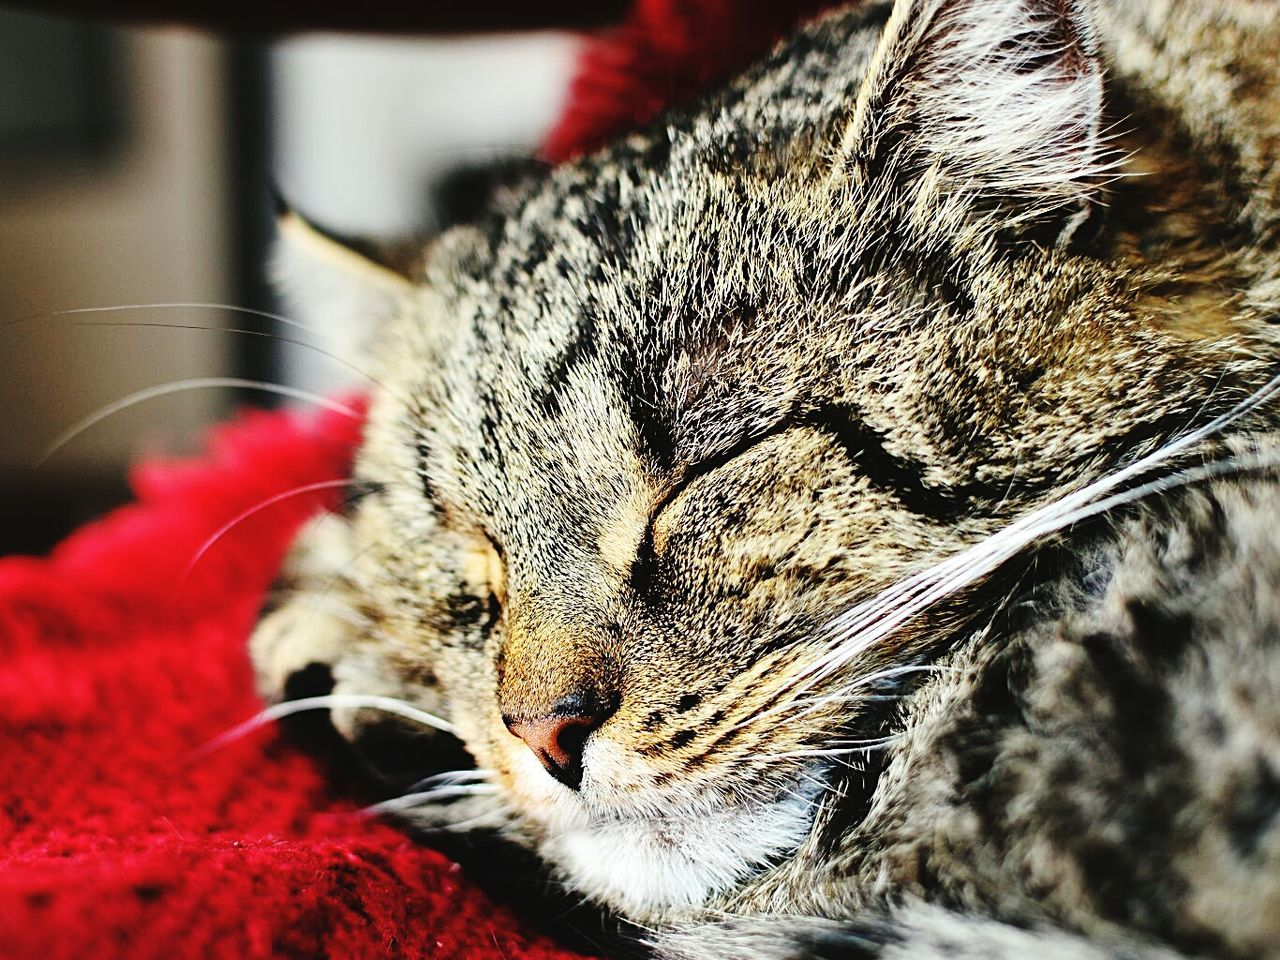 domestic cat, animal themes, domestic animals, one animal, pets, mammal, feline, cat, close-up, whisker, no people, eyes closed, indoors, lying down, relaxation, day